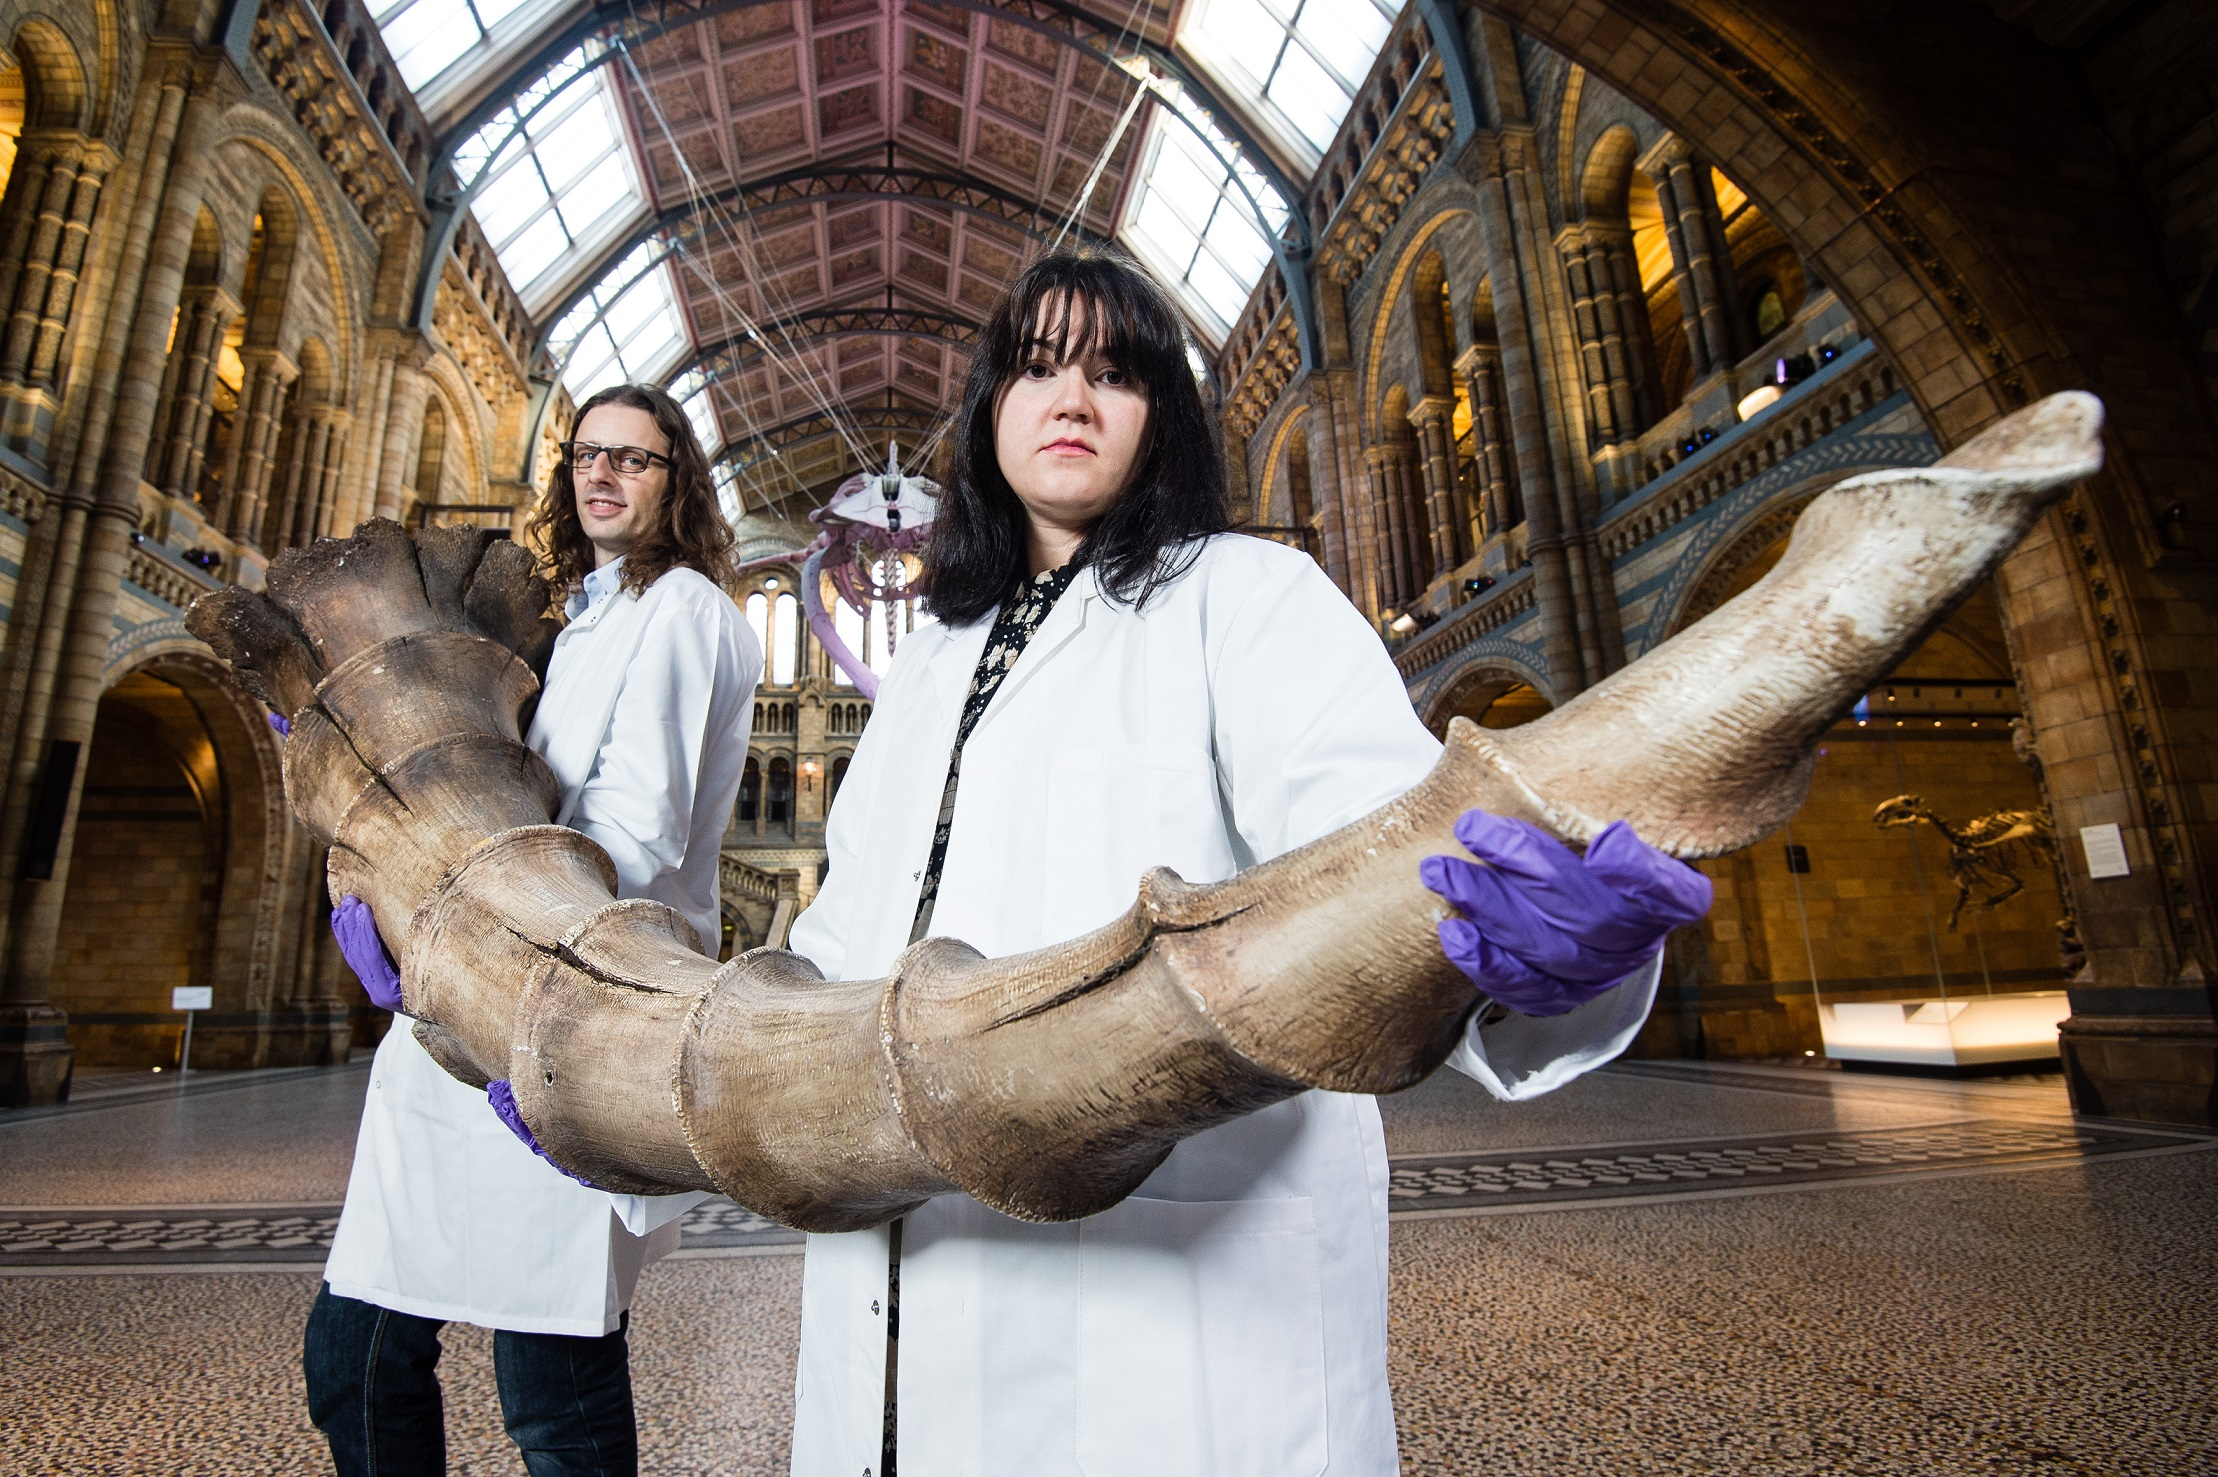 MAGICAL CONNECTION: Roberto Portela Miguez (left) and Efstratia Verveniotou carry an Erumpent horn into the Natural History Museum (© Jeff Spicer/Getty Images)